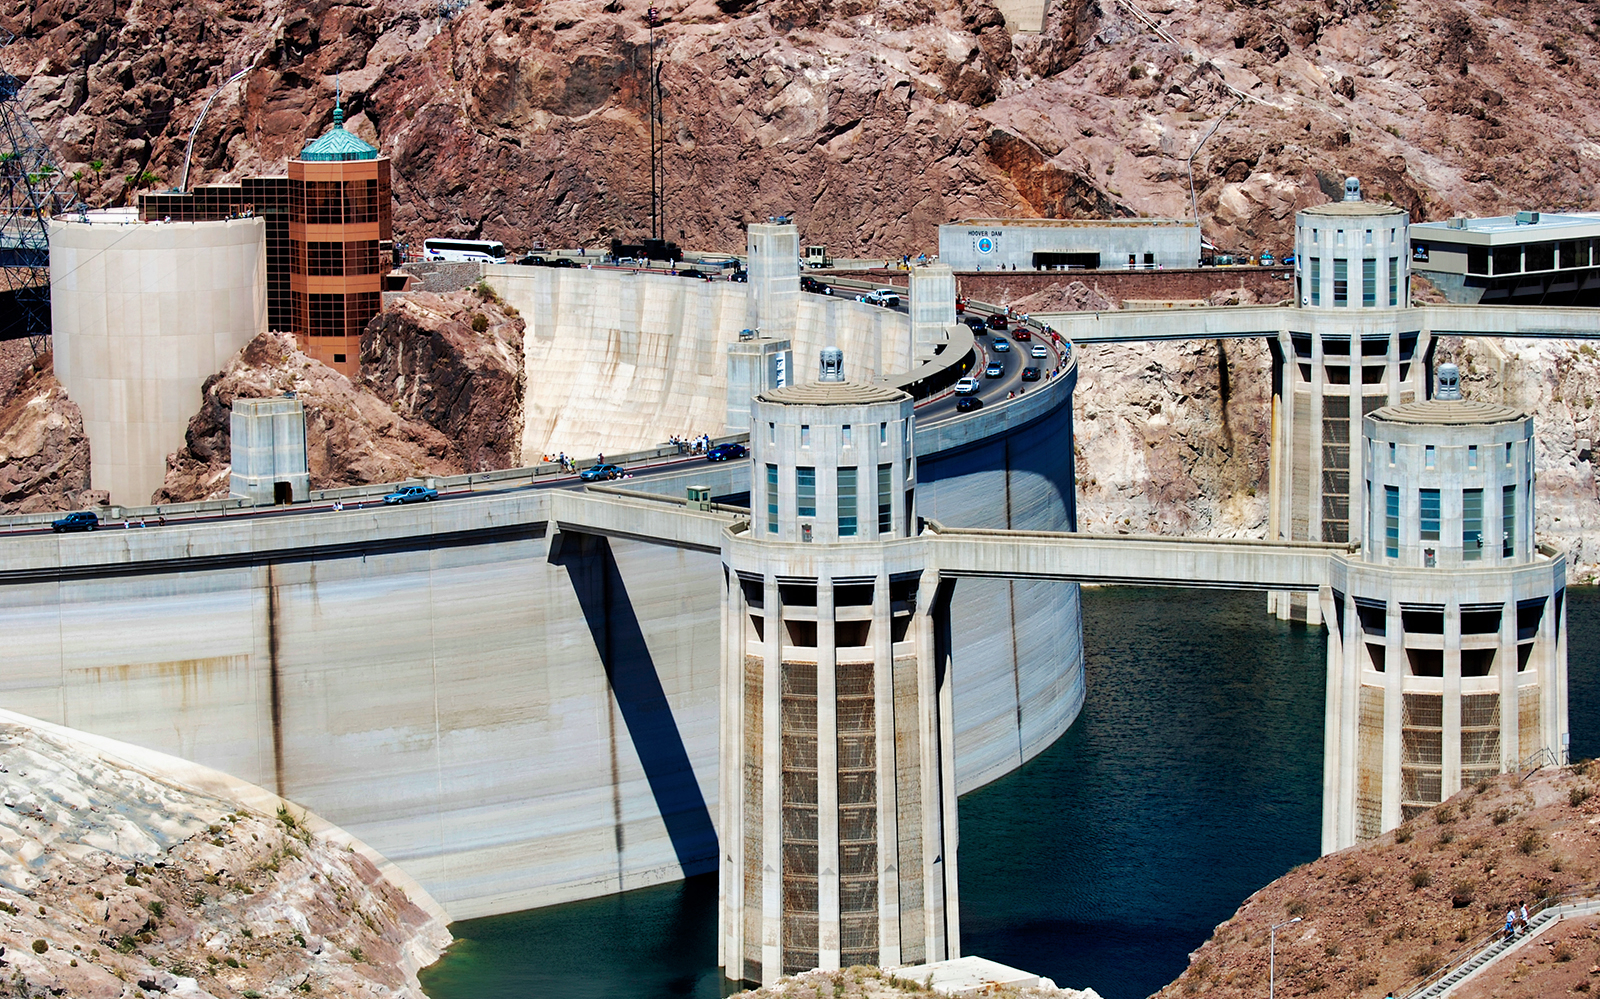 Hoover Dam Tour - Special Offers for JPMembers - JetPrivilege